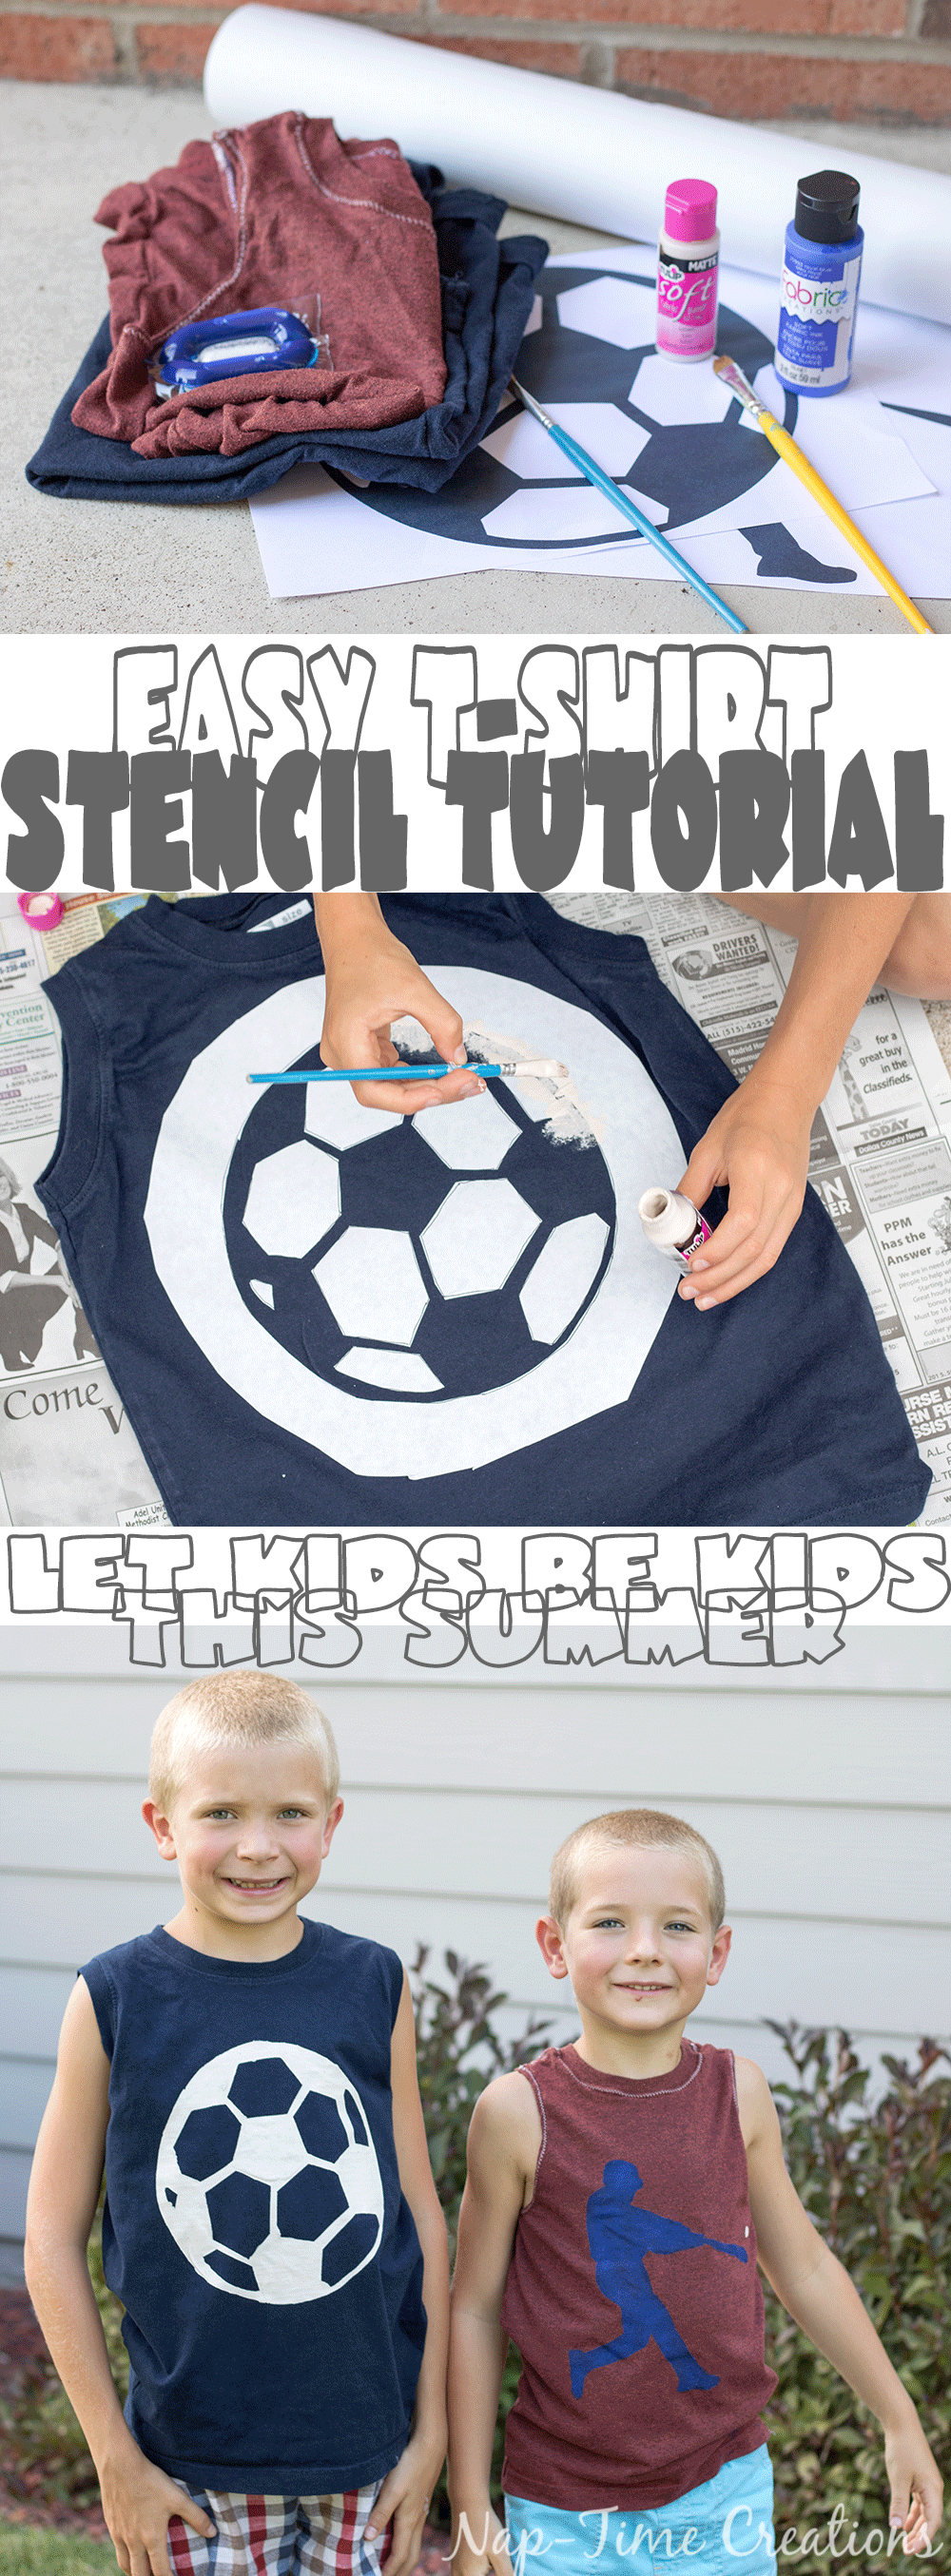 Easy T-shirt Stencil Tutorial fun kids summer craft from Nap-Time-Creations #Clean2TheCore ad